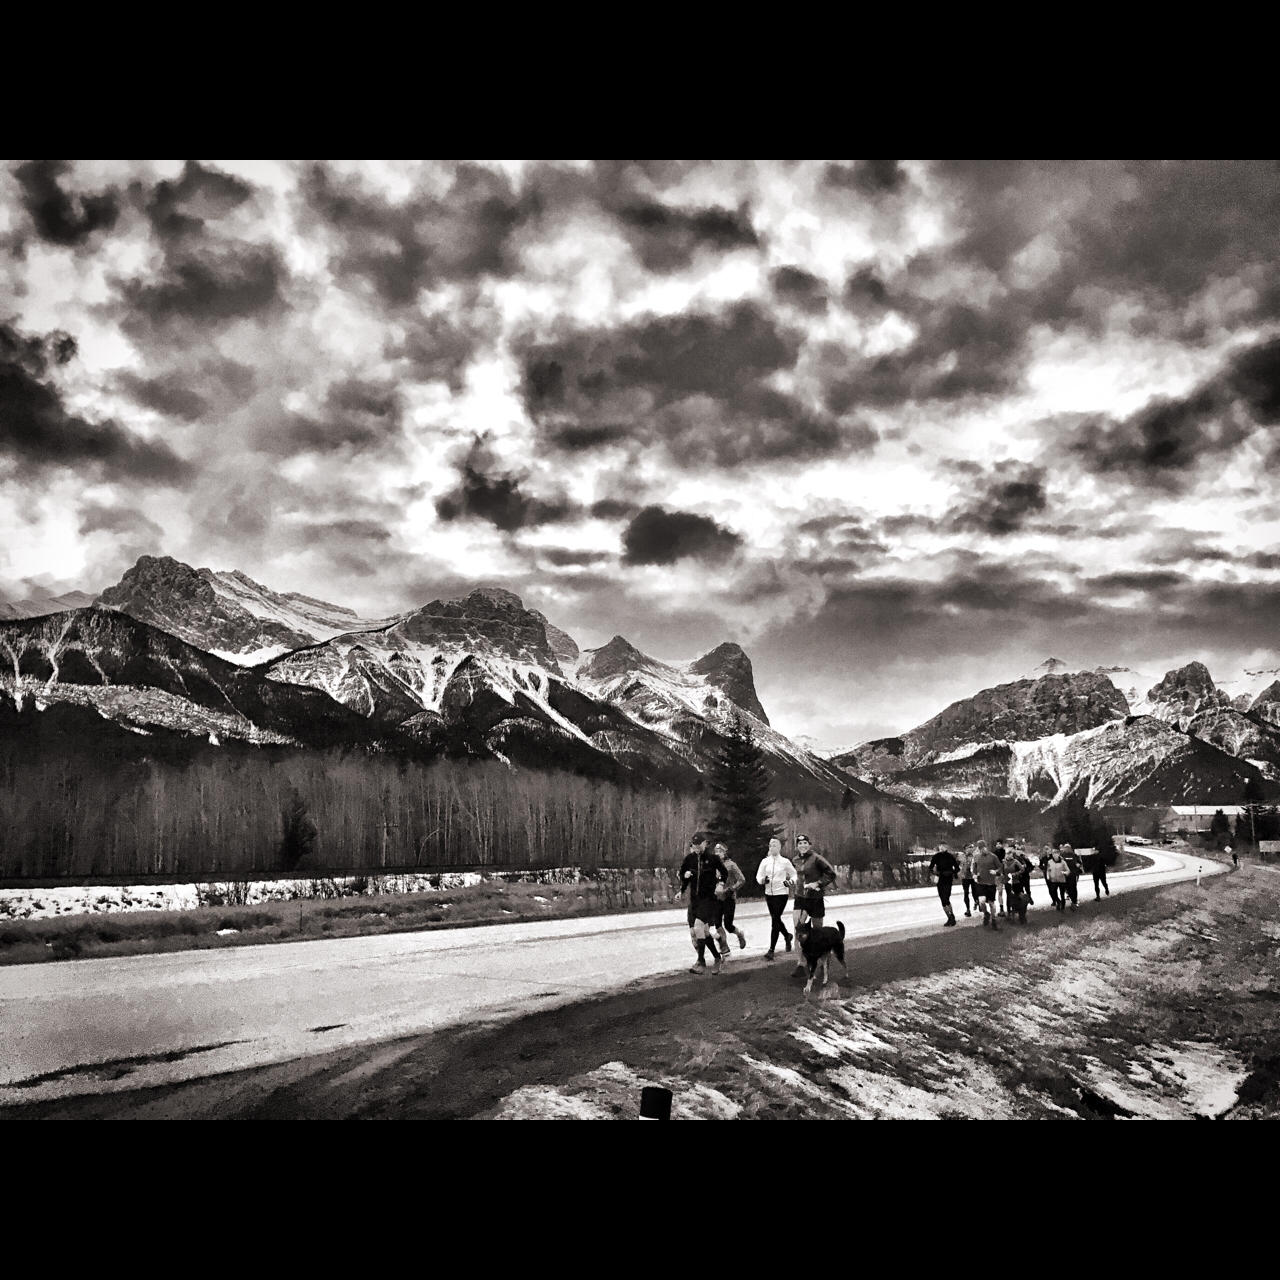 Thursday night 'Dirtbag Runners Bow Valley' - headed to Indian Flats road for some suffer.